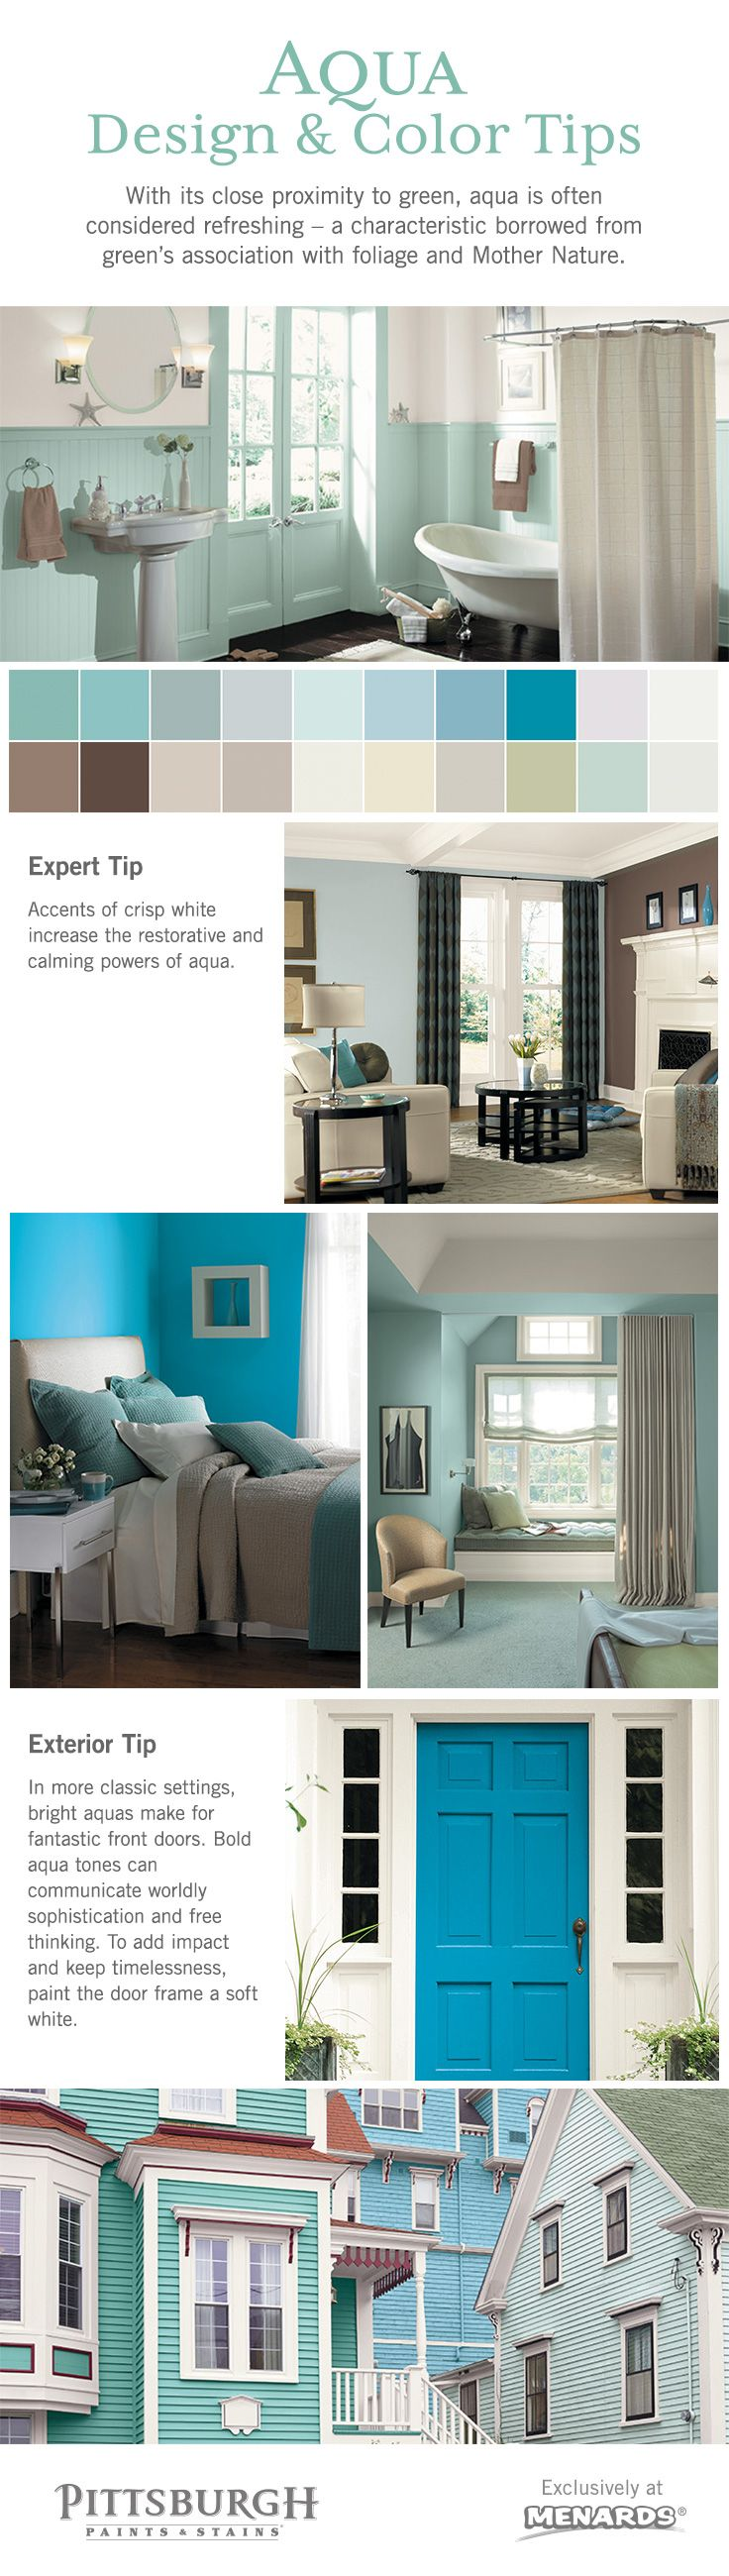 Aqua Color & Design Inspiration! With its close proximity to green, aqua is often considered refreshing – a characteristic borrowed from green's association with foliage and Mother Nature.  Pale and pastel shades of aqua communicate such refreshed energy in a mild and gentle delivery, creating a nurturing and encouraging feeling. For this reason, aqua hues are ideal for children's rooms, family rooms, and bathrooms designed with a spa-like theme.